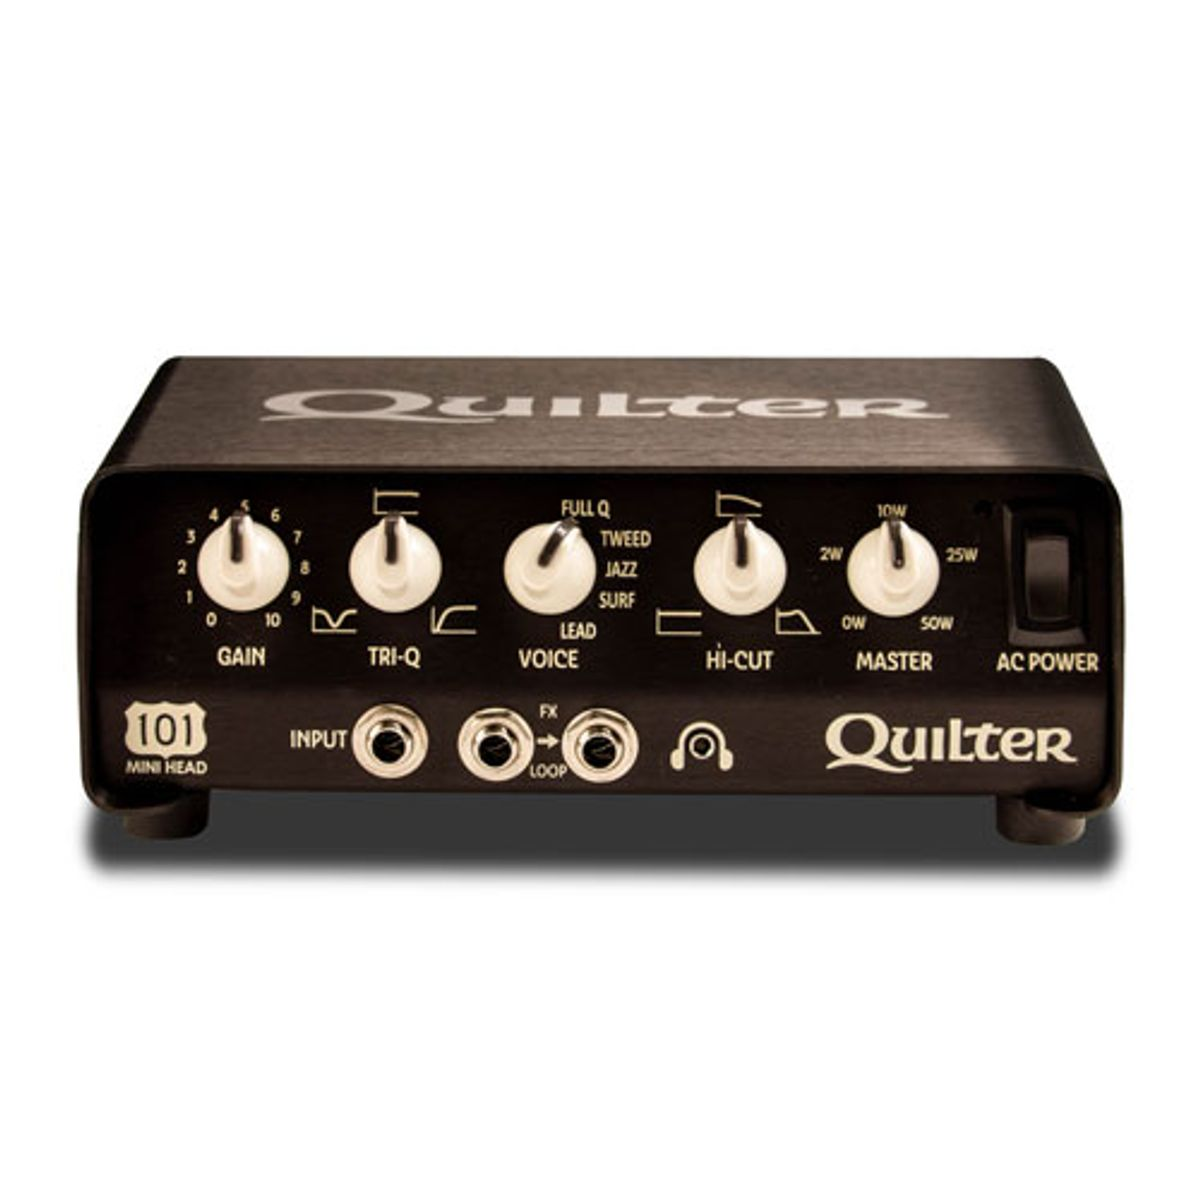 Quilter Labs Announces the 101 Mini Head